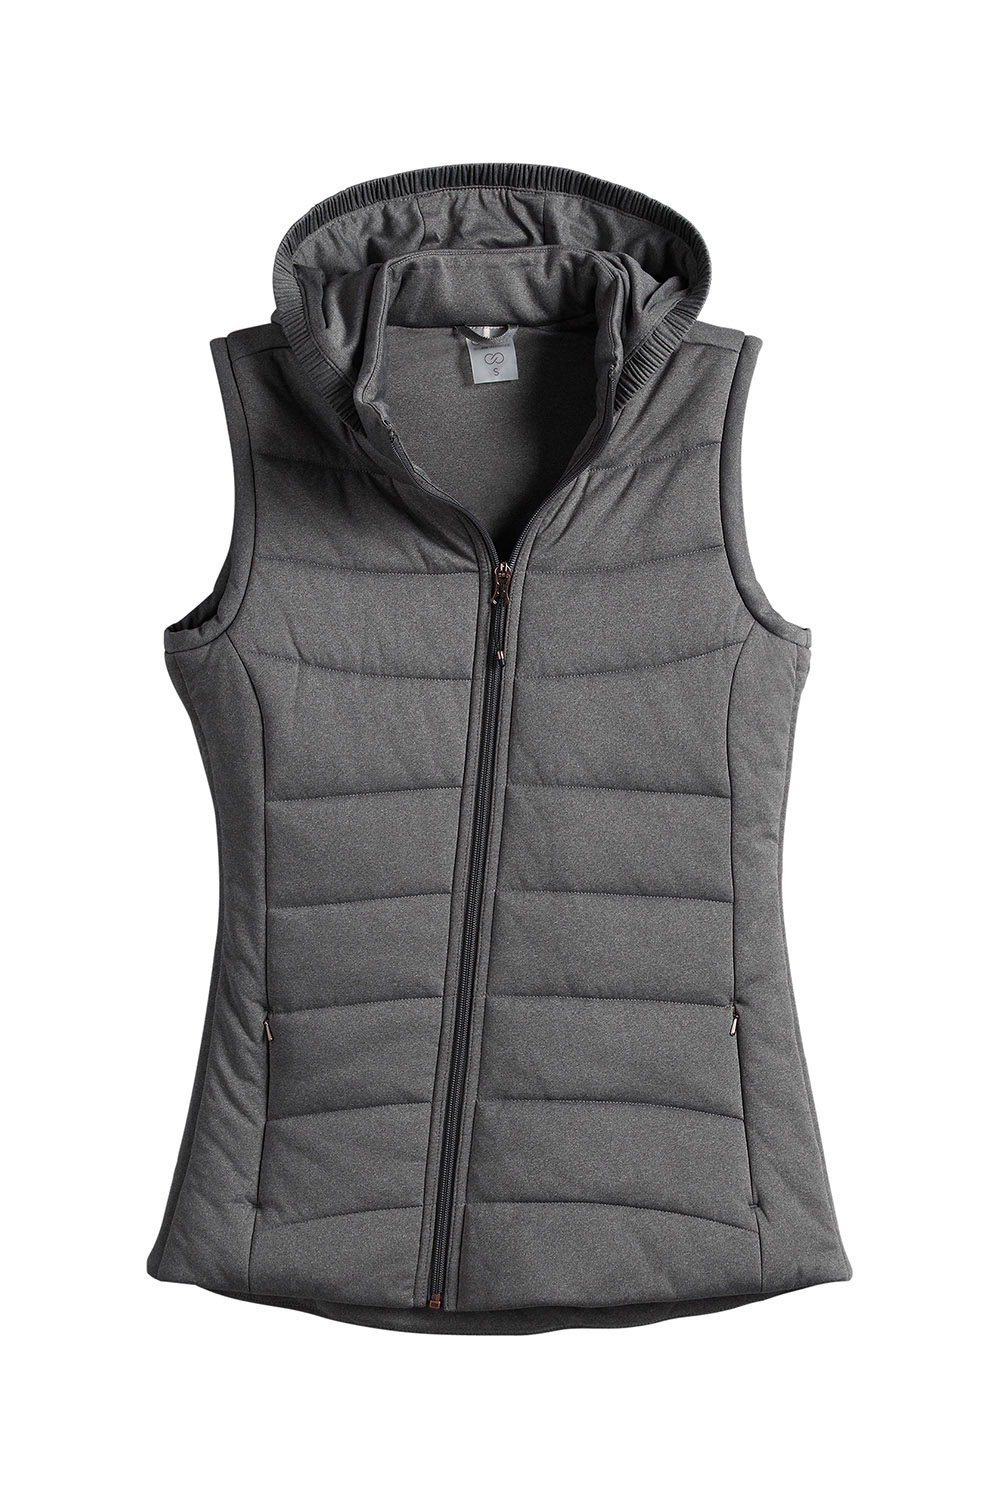 Shop for girls puffer vest online at Target. Free shipping on purchases over $35 and save 5% every day with your Target REDcard.